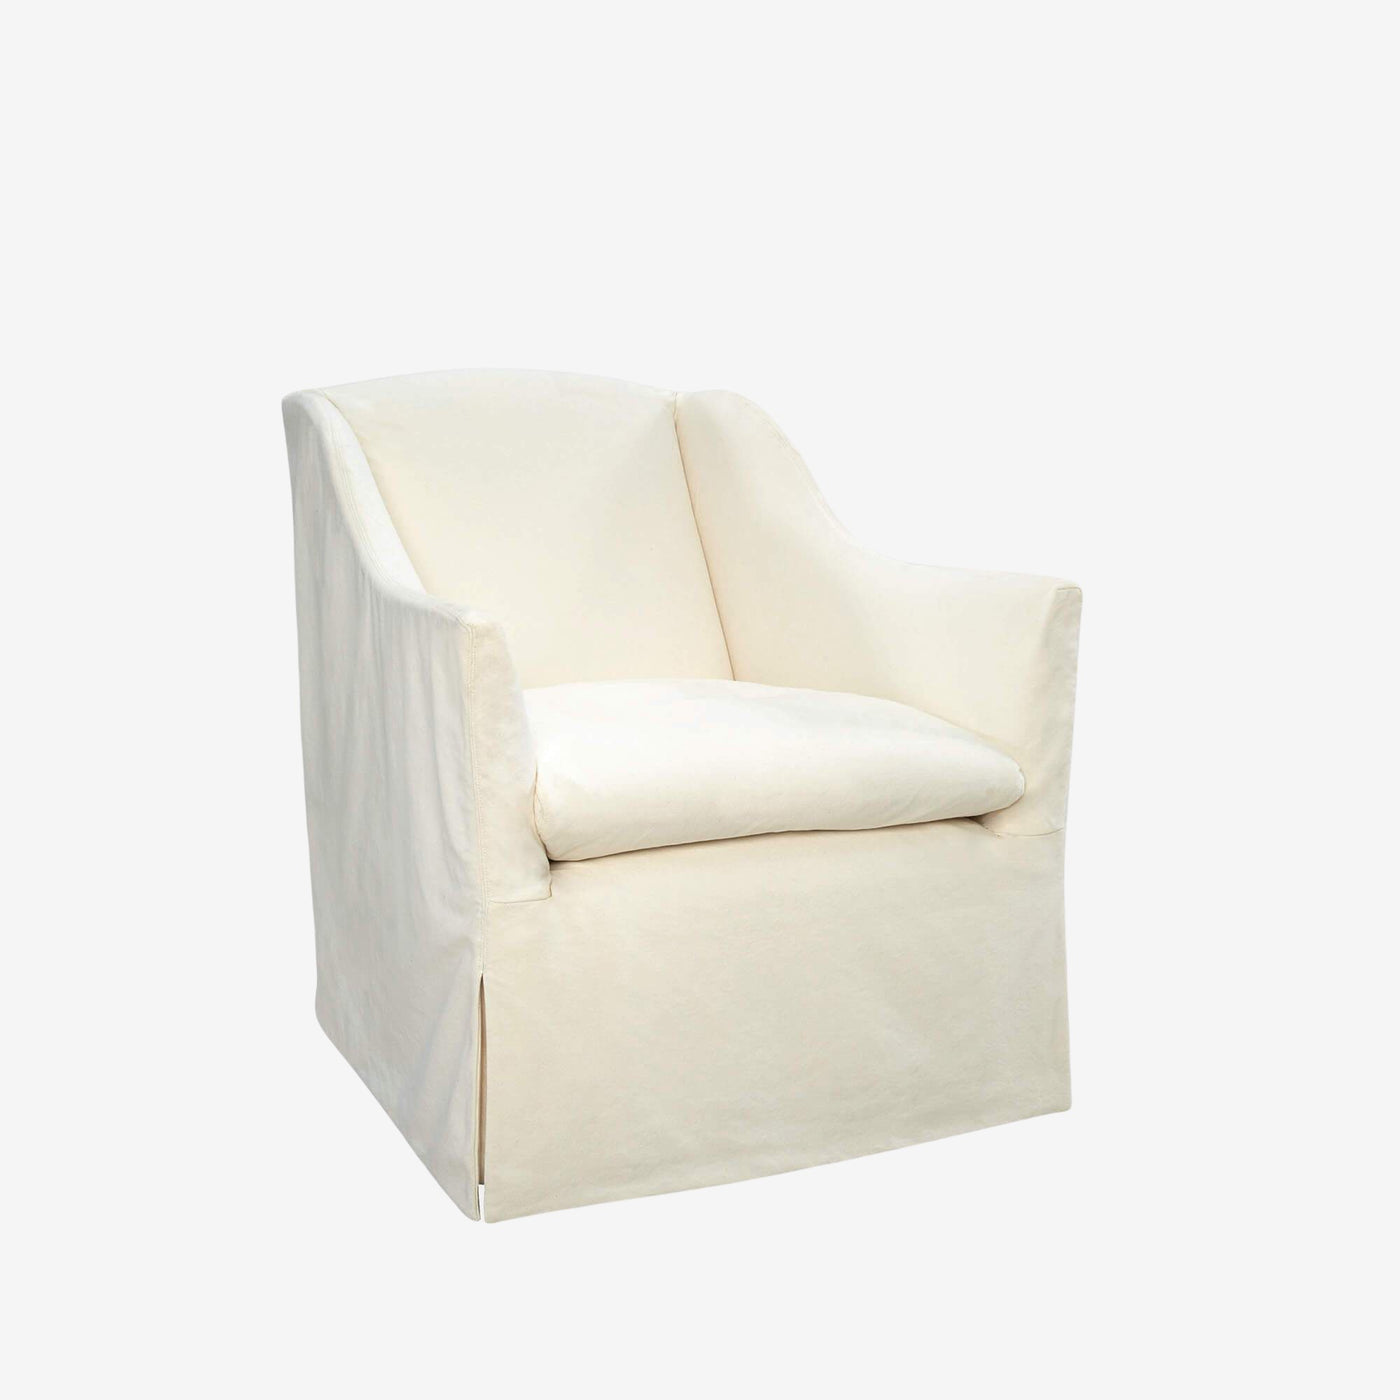 Chloe Slipcovered Swivel Chair